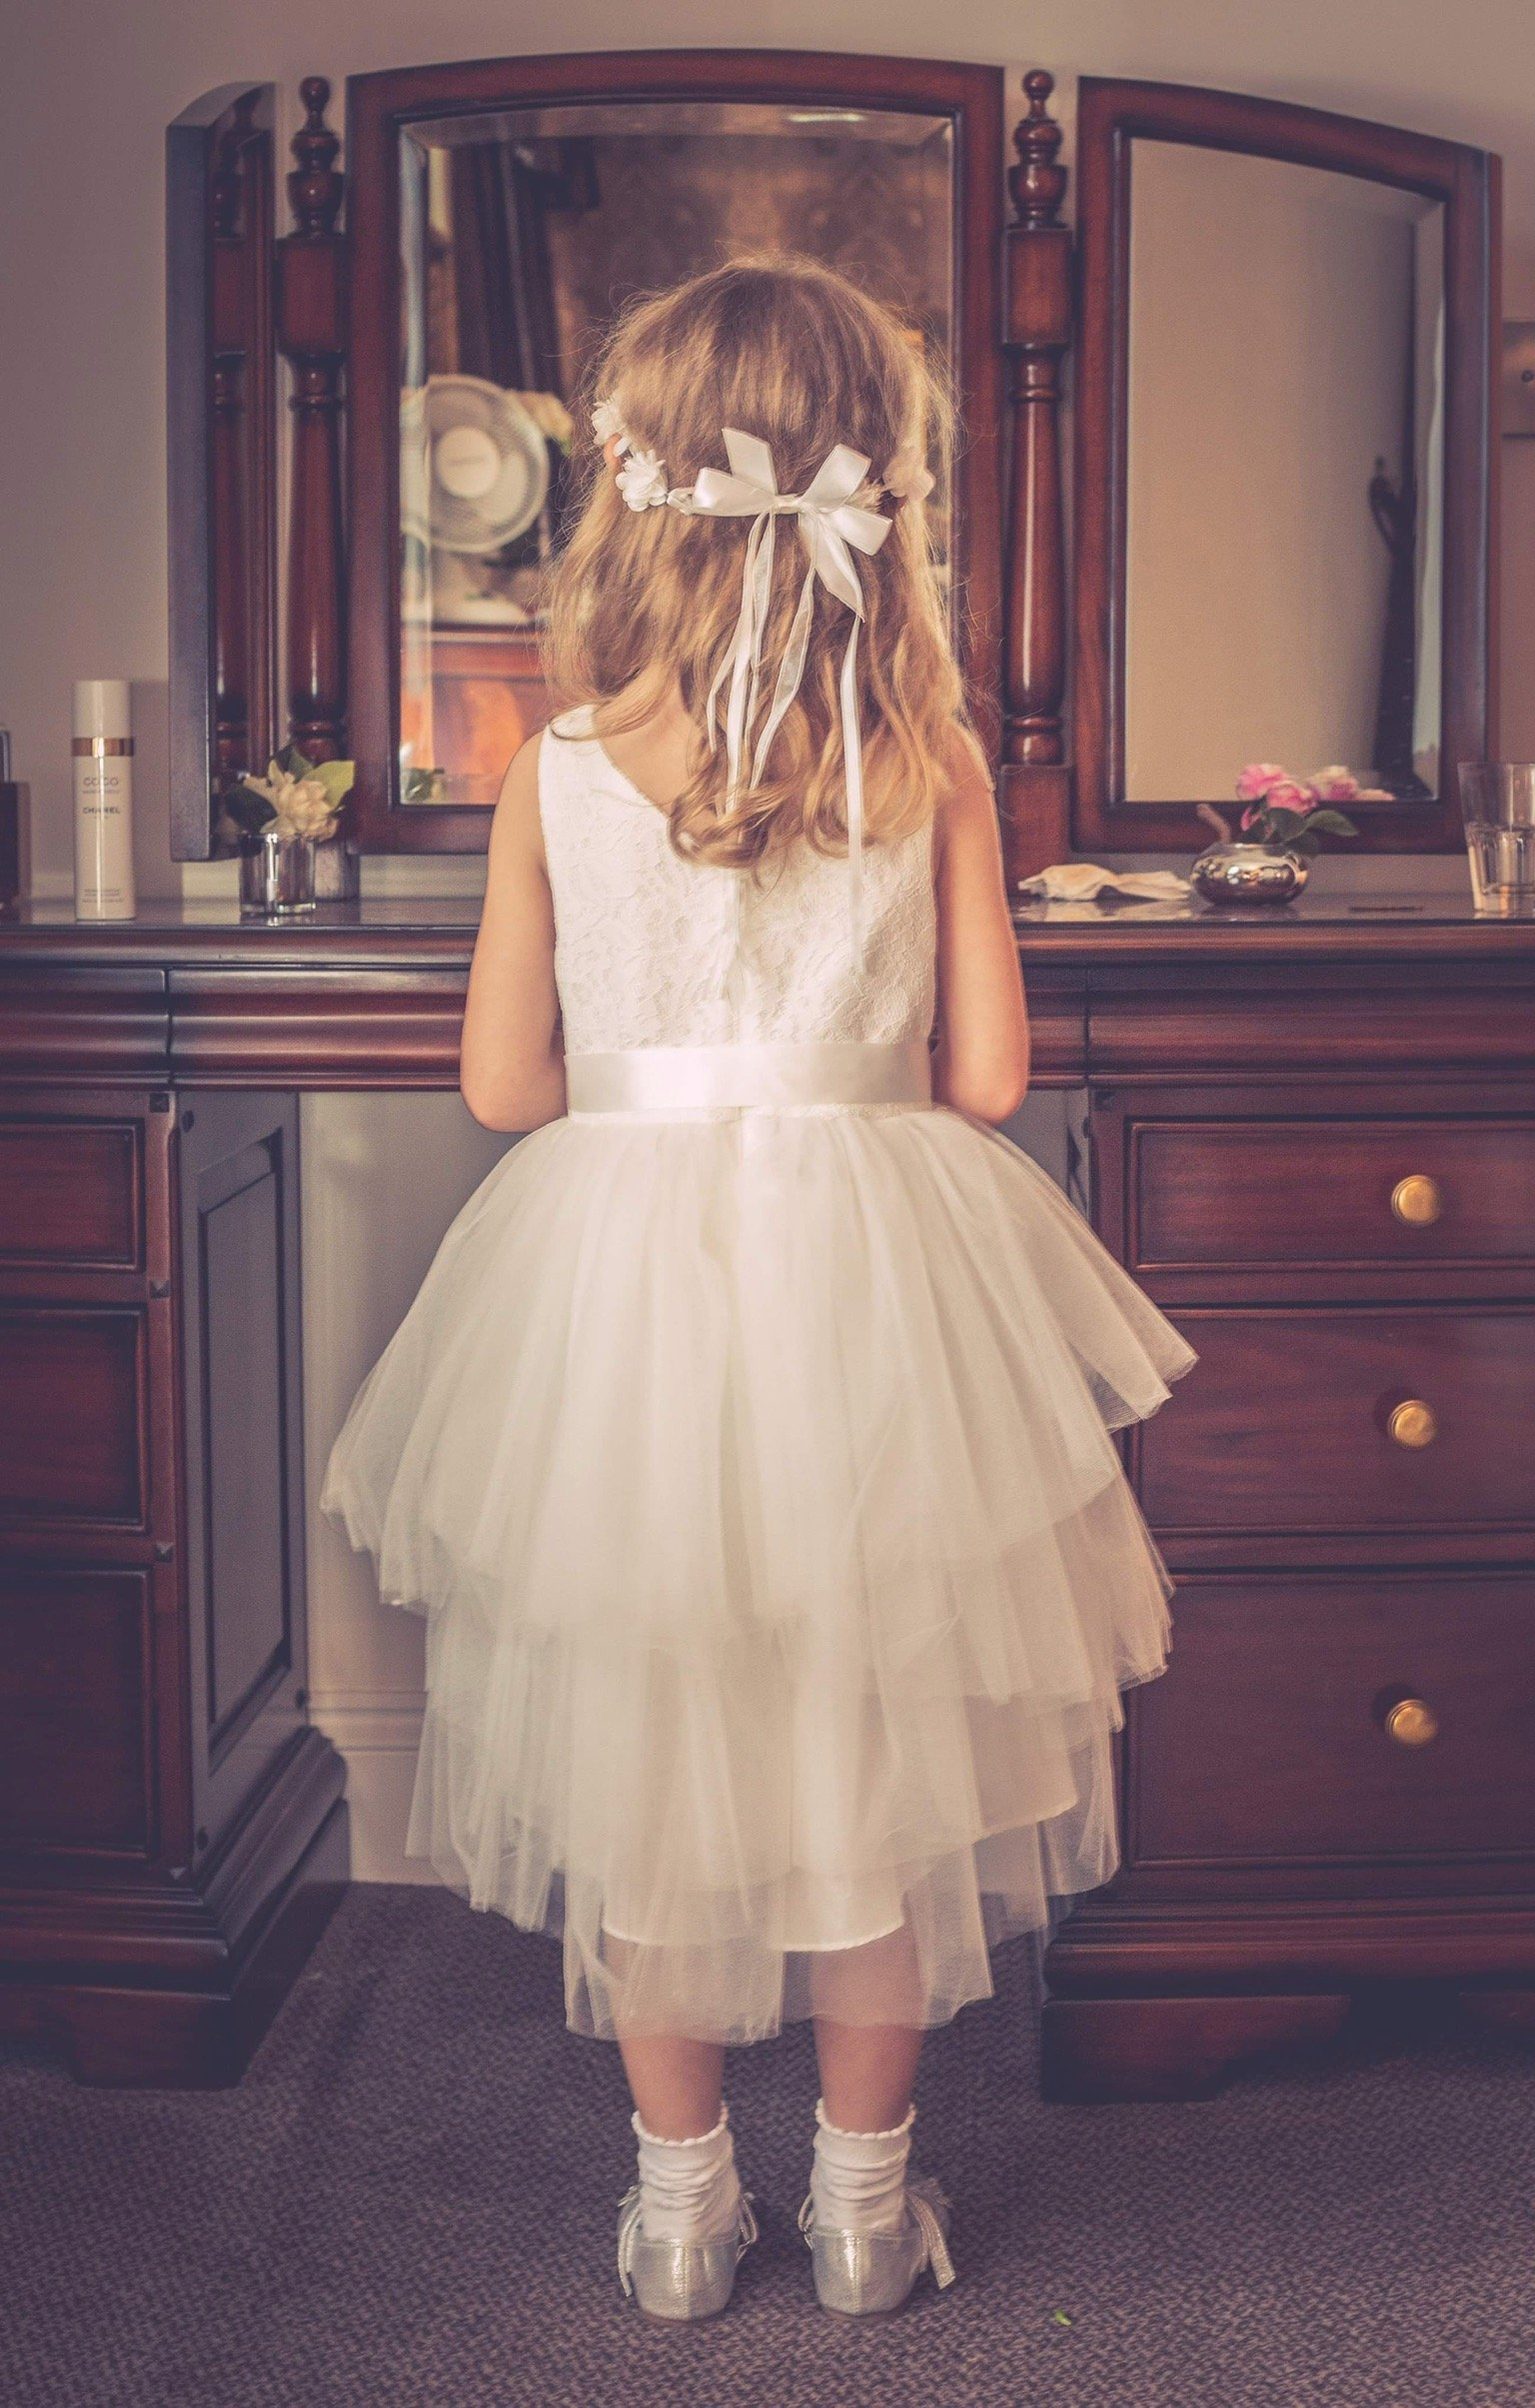 girl at wedding looking in the mirror